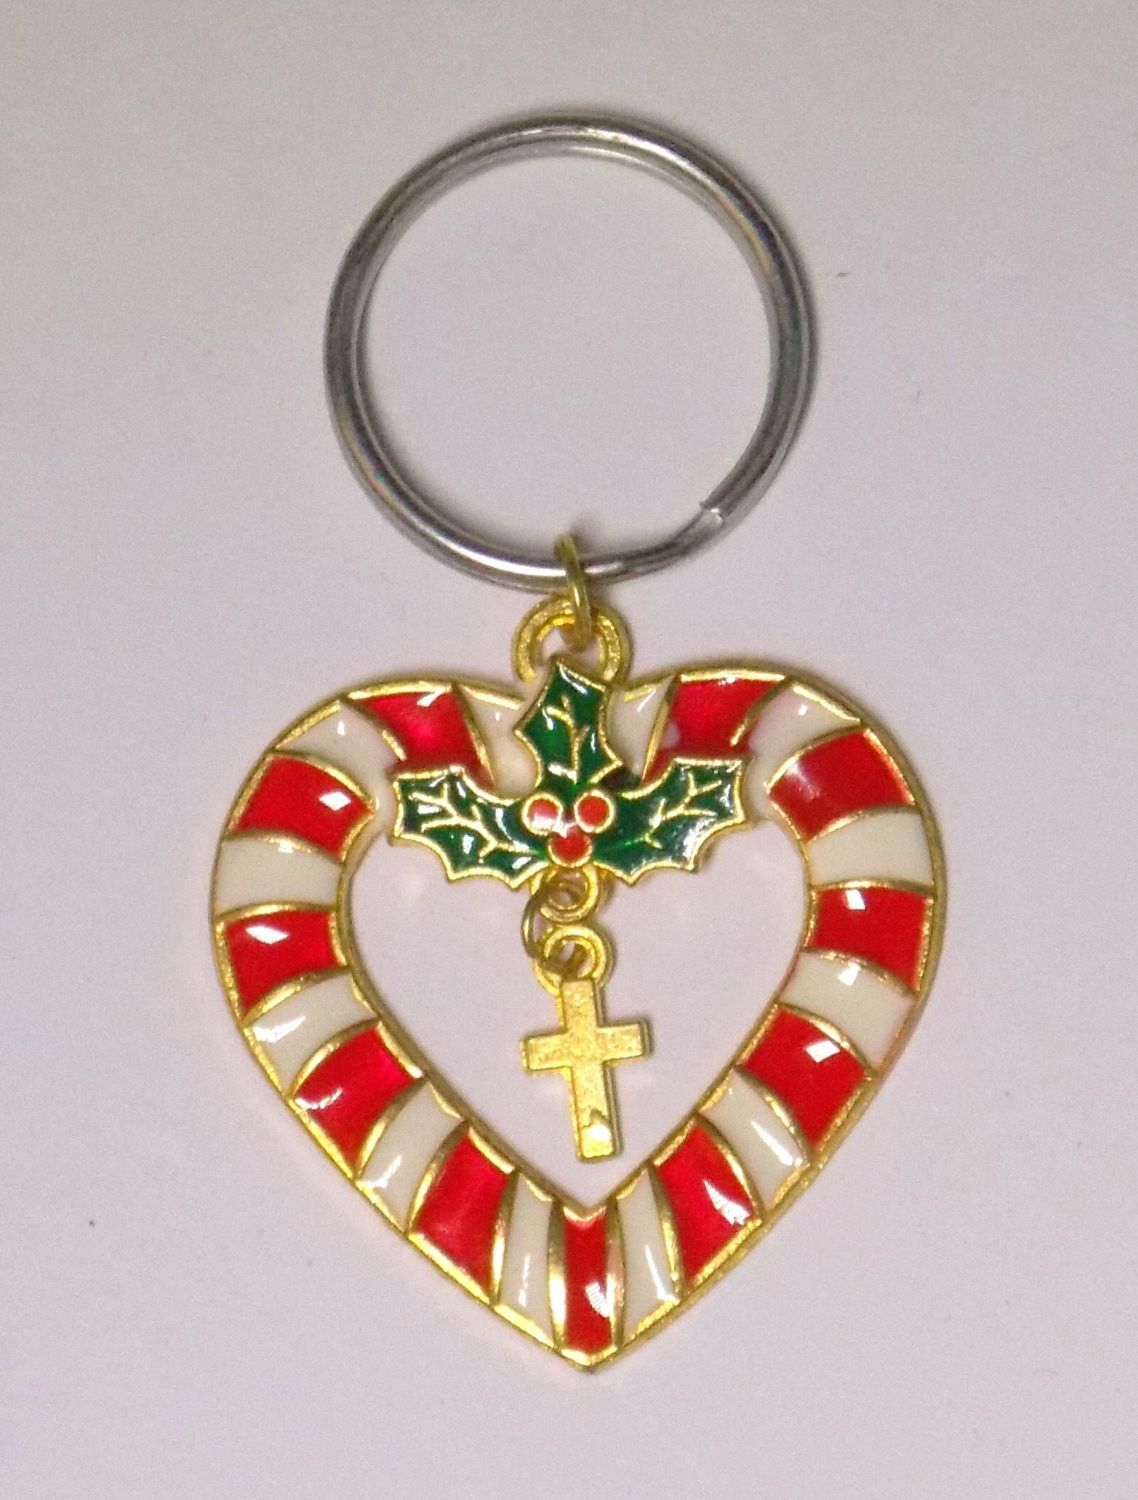 Heart shaped candy cane with holly and a gold cross key chain. Perfect for a Christmas stocking stuffer. #fashion #jewelry #bohemian #boho #sale